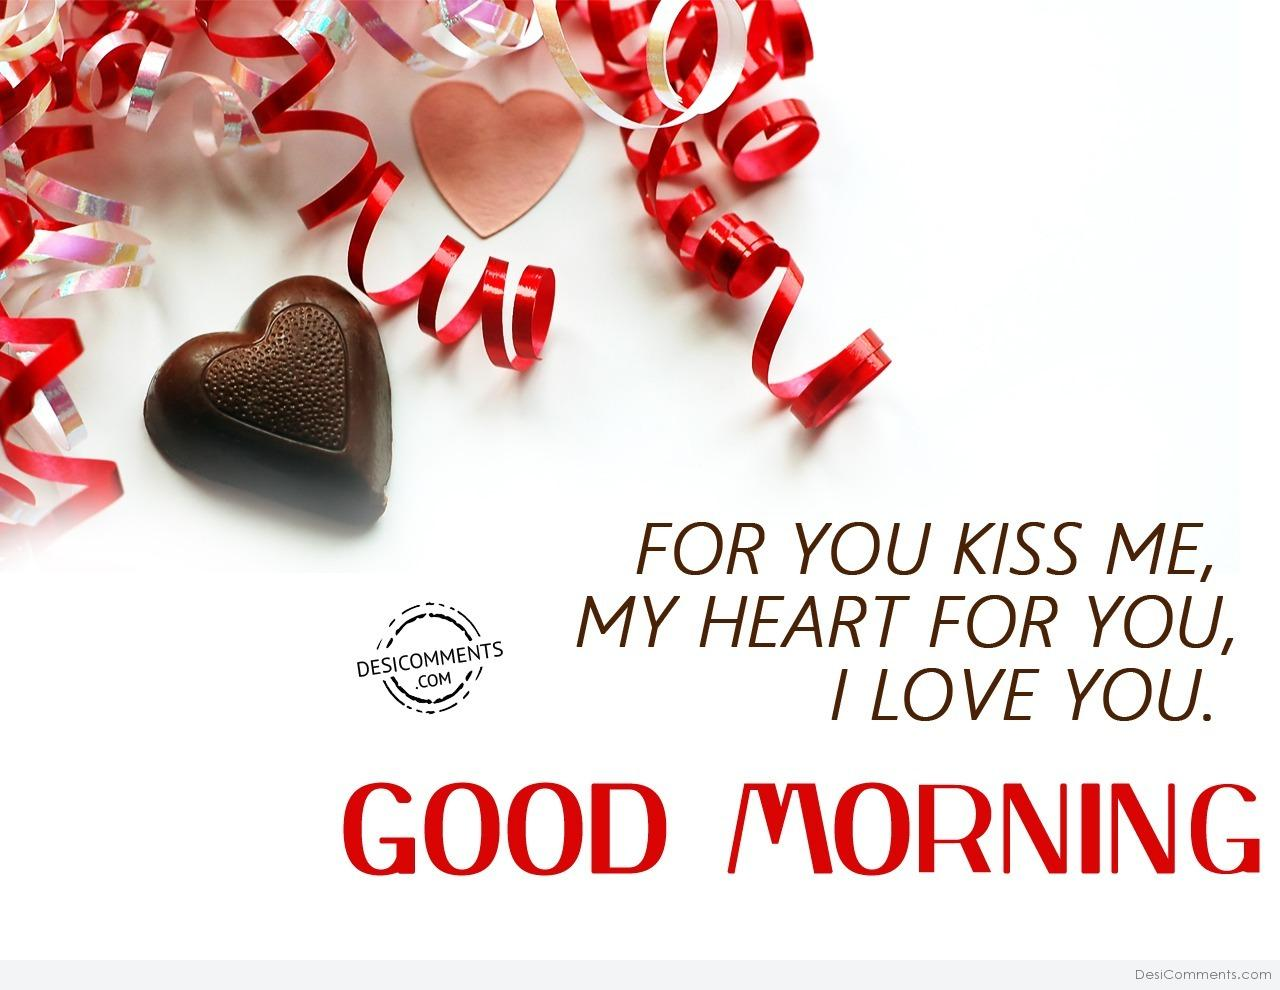 I Love You  Good Morning - DesiComments.com